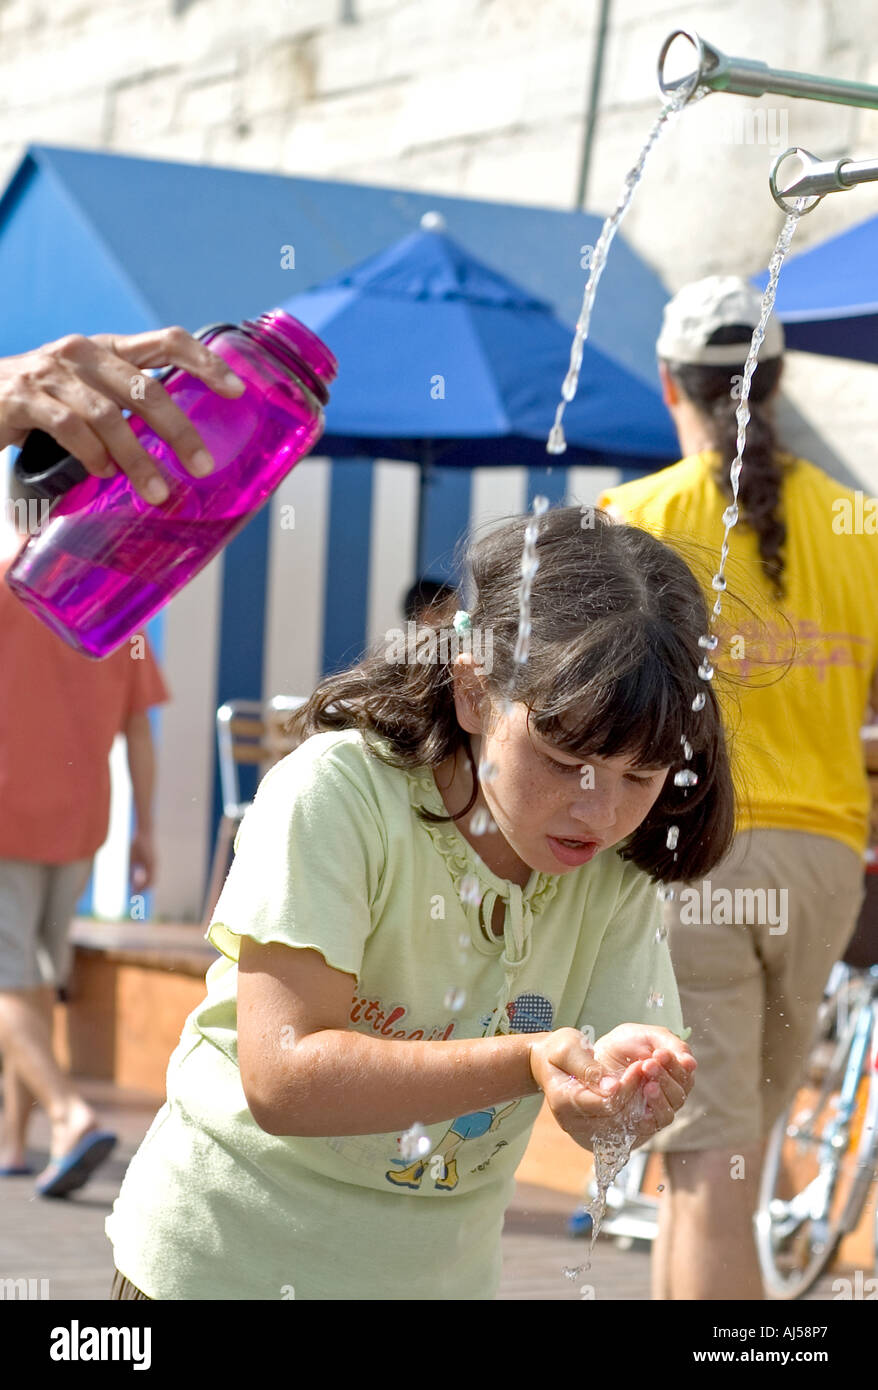 Thirsty people drinking from a  public fountain set up for Paris Plage, during the summer heatwave, Paris, France. - Stock Image